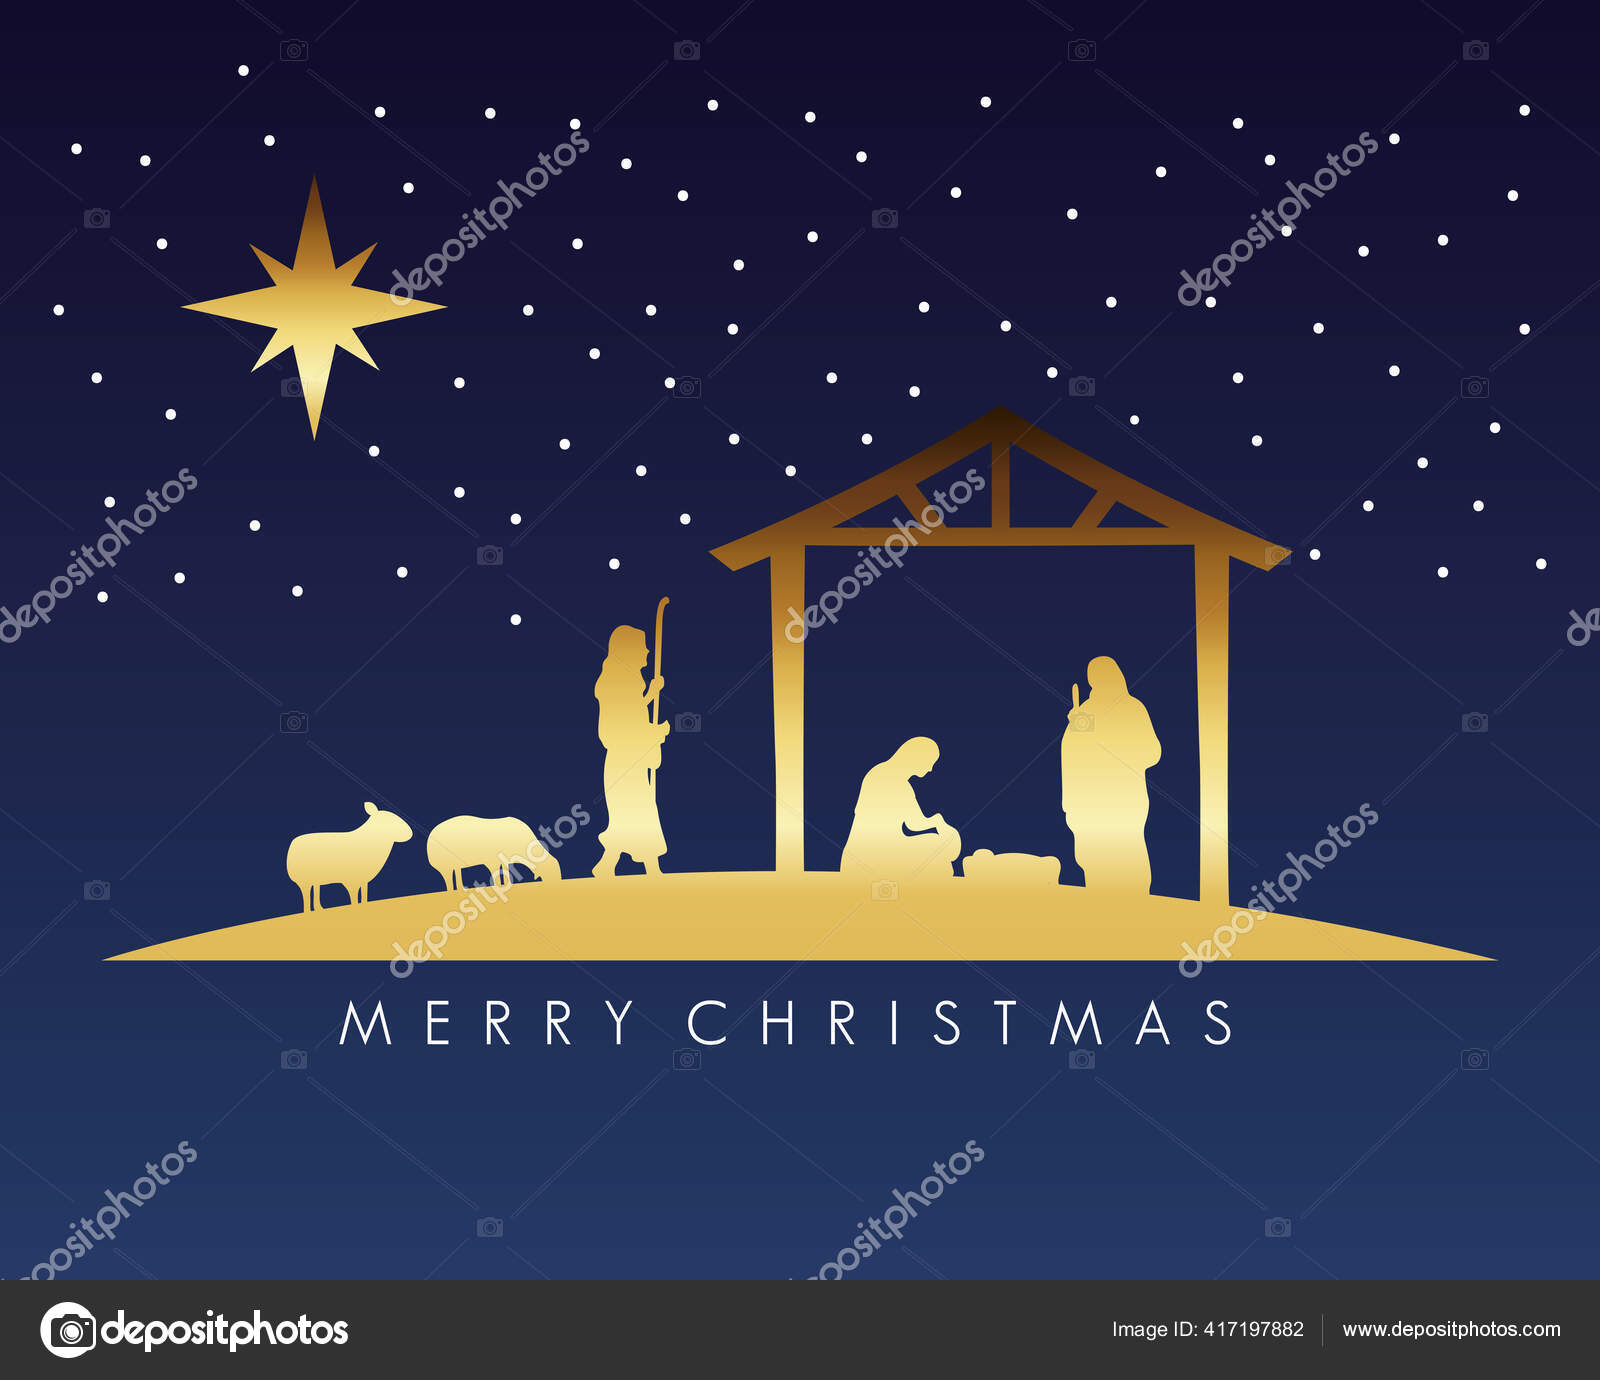 Happy Merry Christmas Manger Scene With Golden Holy Family In Stable And Animals Stock Vector Image By C Yupiramos 417197882